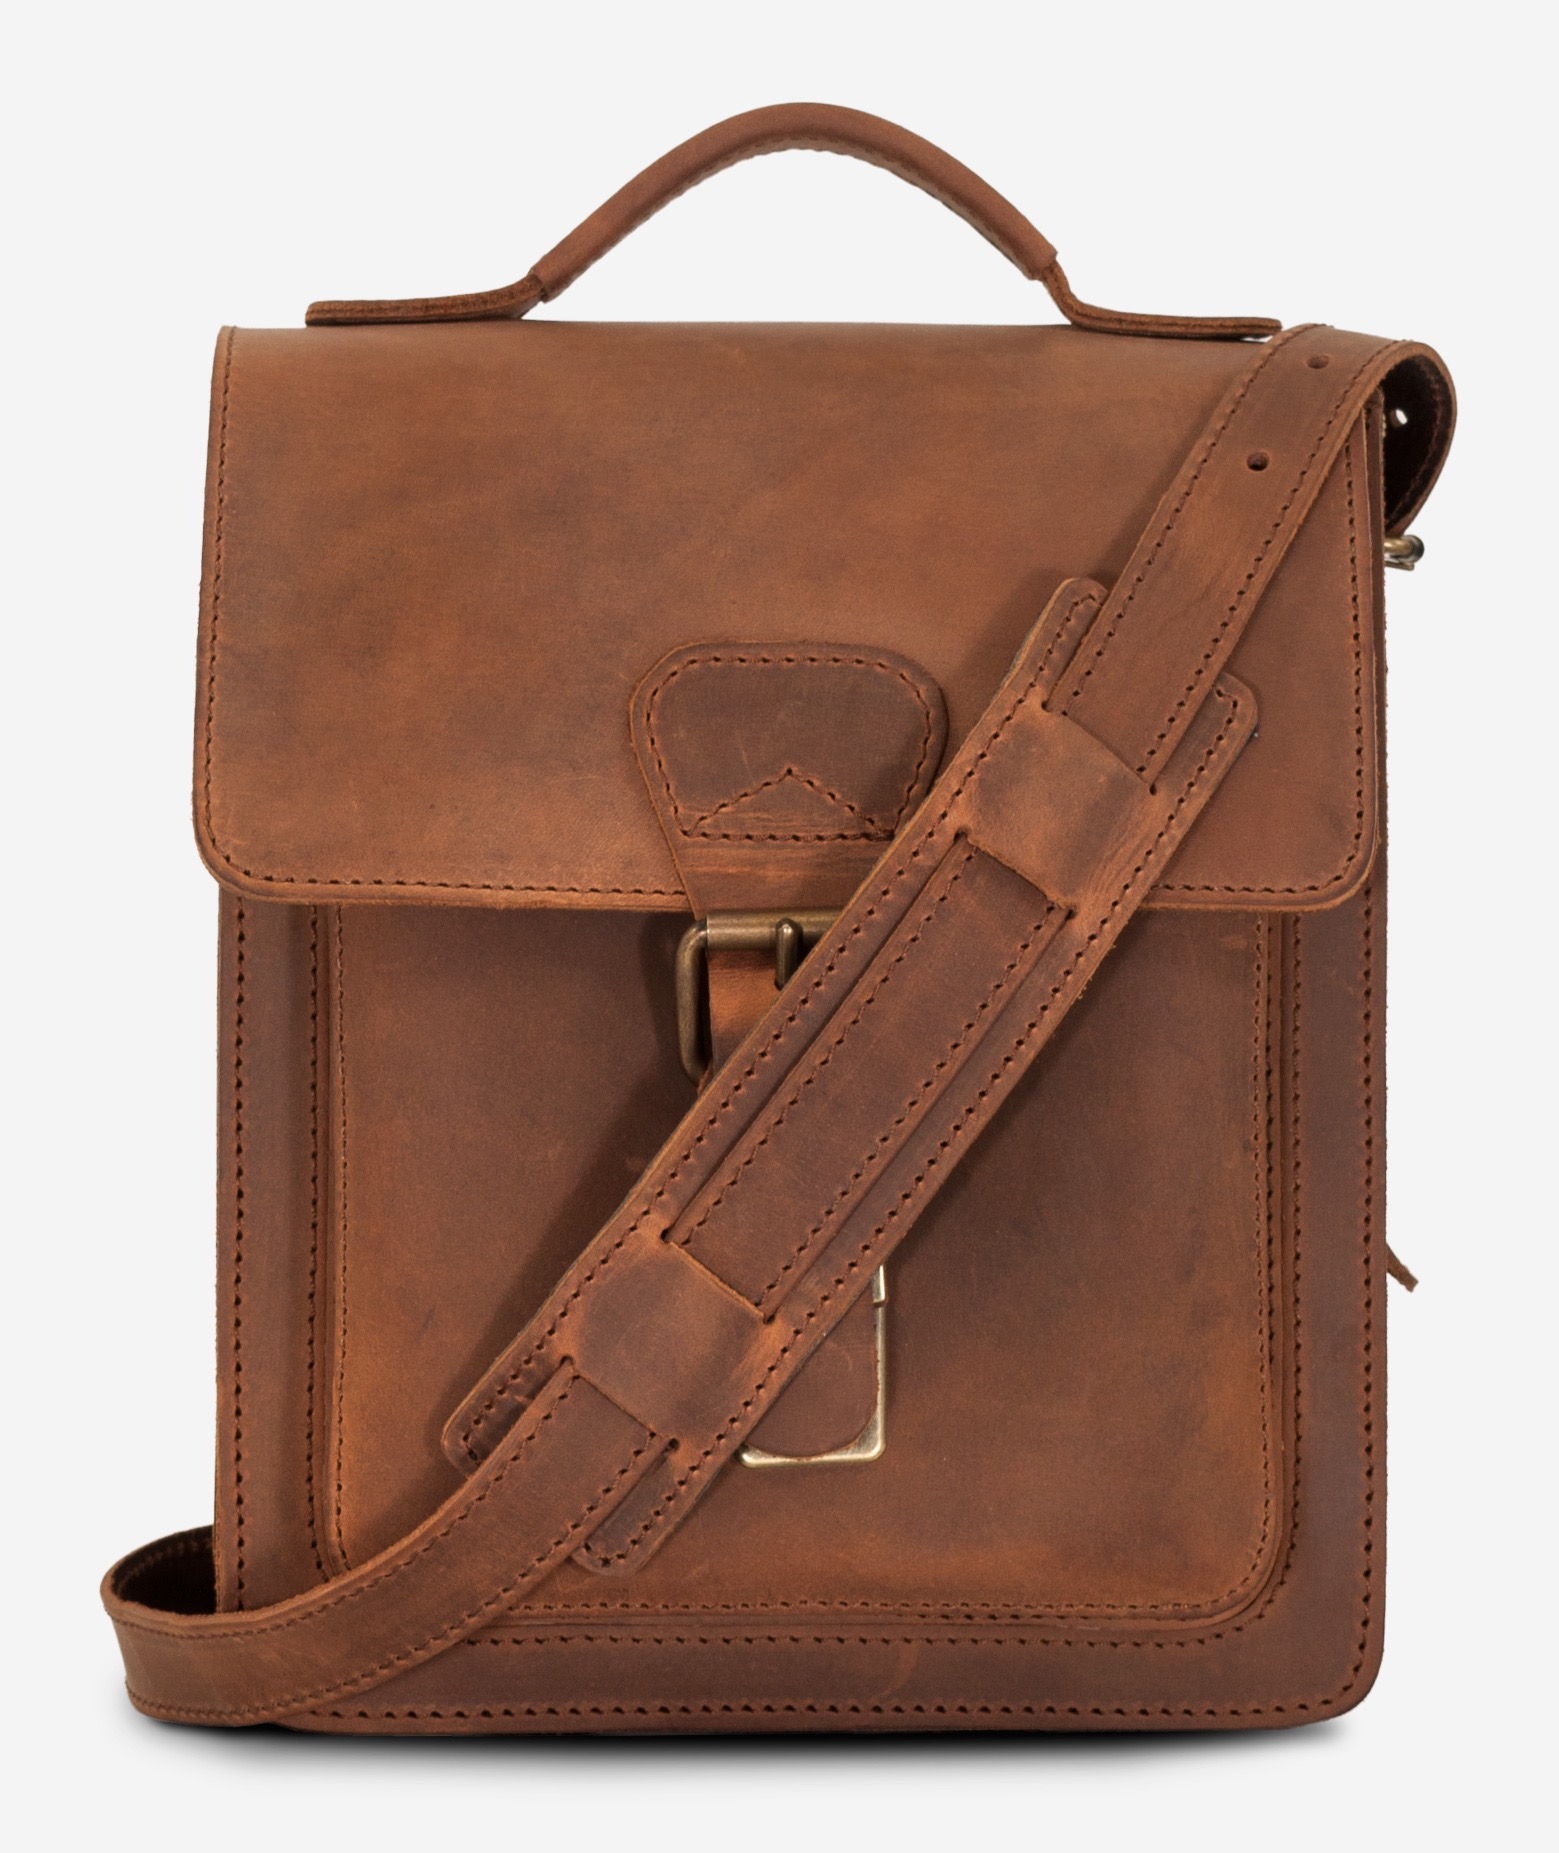 b4bbd6f845a8 Front view of the handmade vegetable-tanned brown leather crossbody bag for  men.